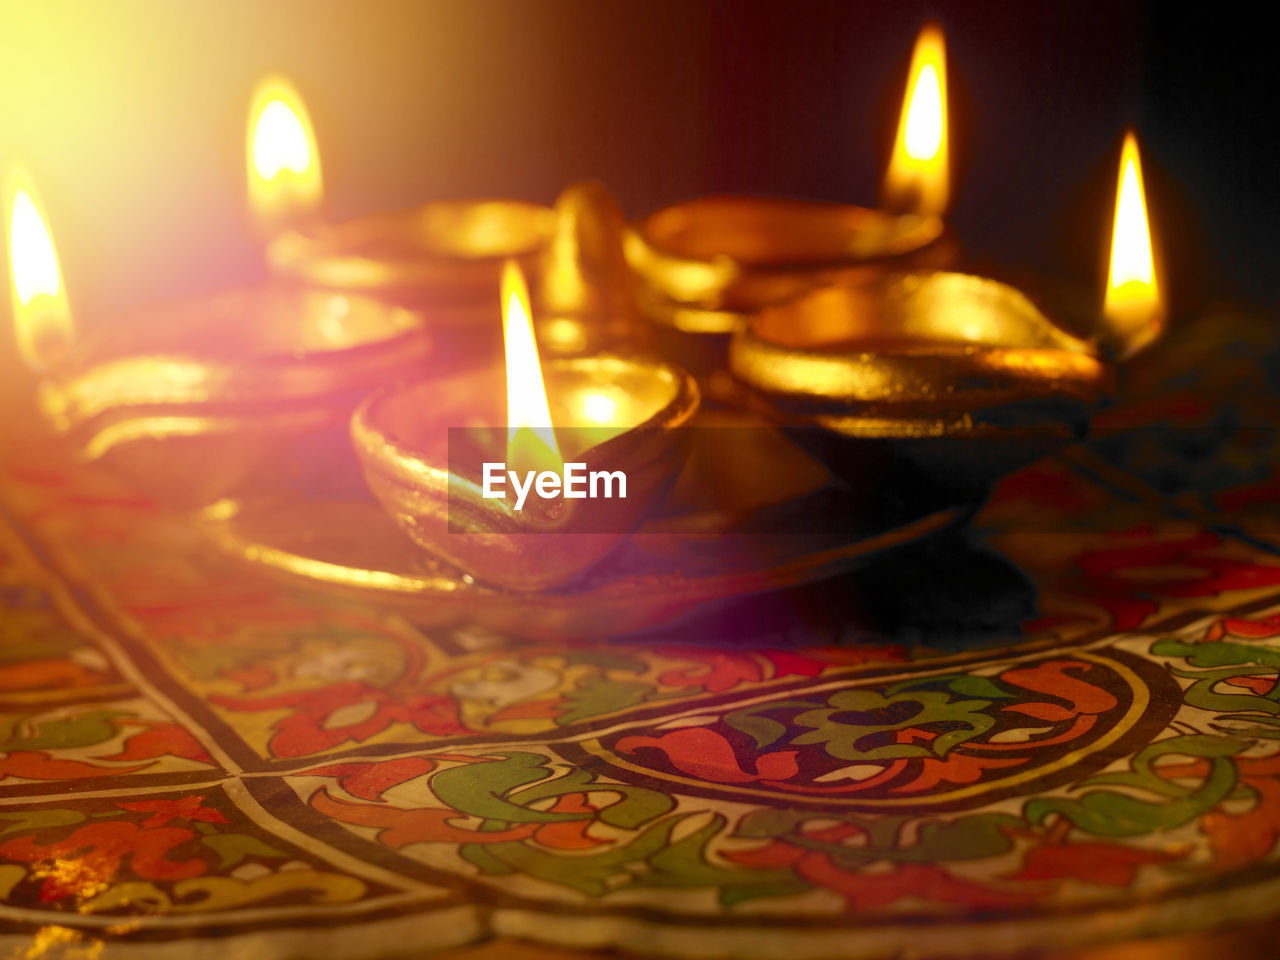 flame, burning, candle, celebration, diya - oil lamp, oil lamp, illuminated, indoors, heat - temperature, glowing, diwali, no people, lighting equipment, tea light, selective focus, traditional festival, close-up, tradition, table, night